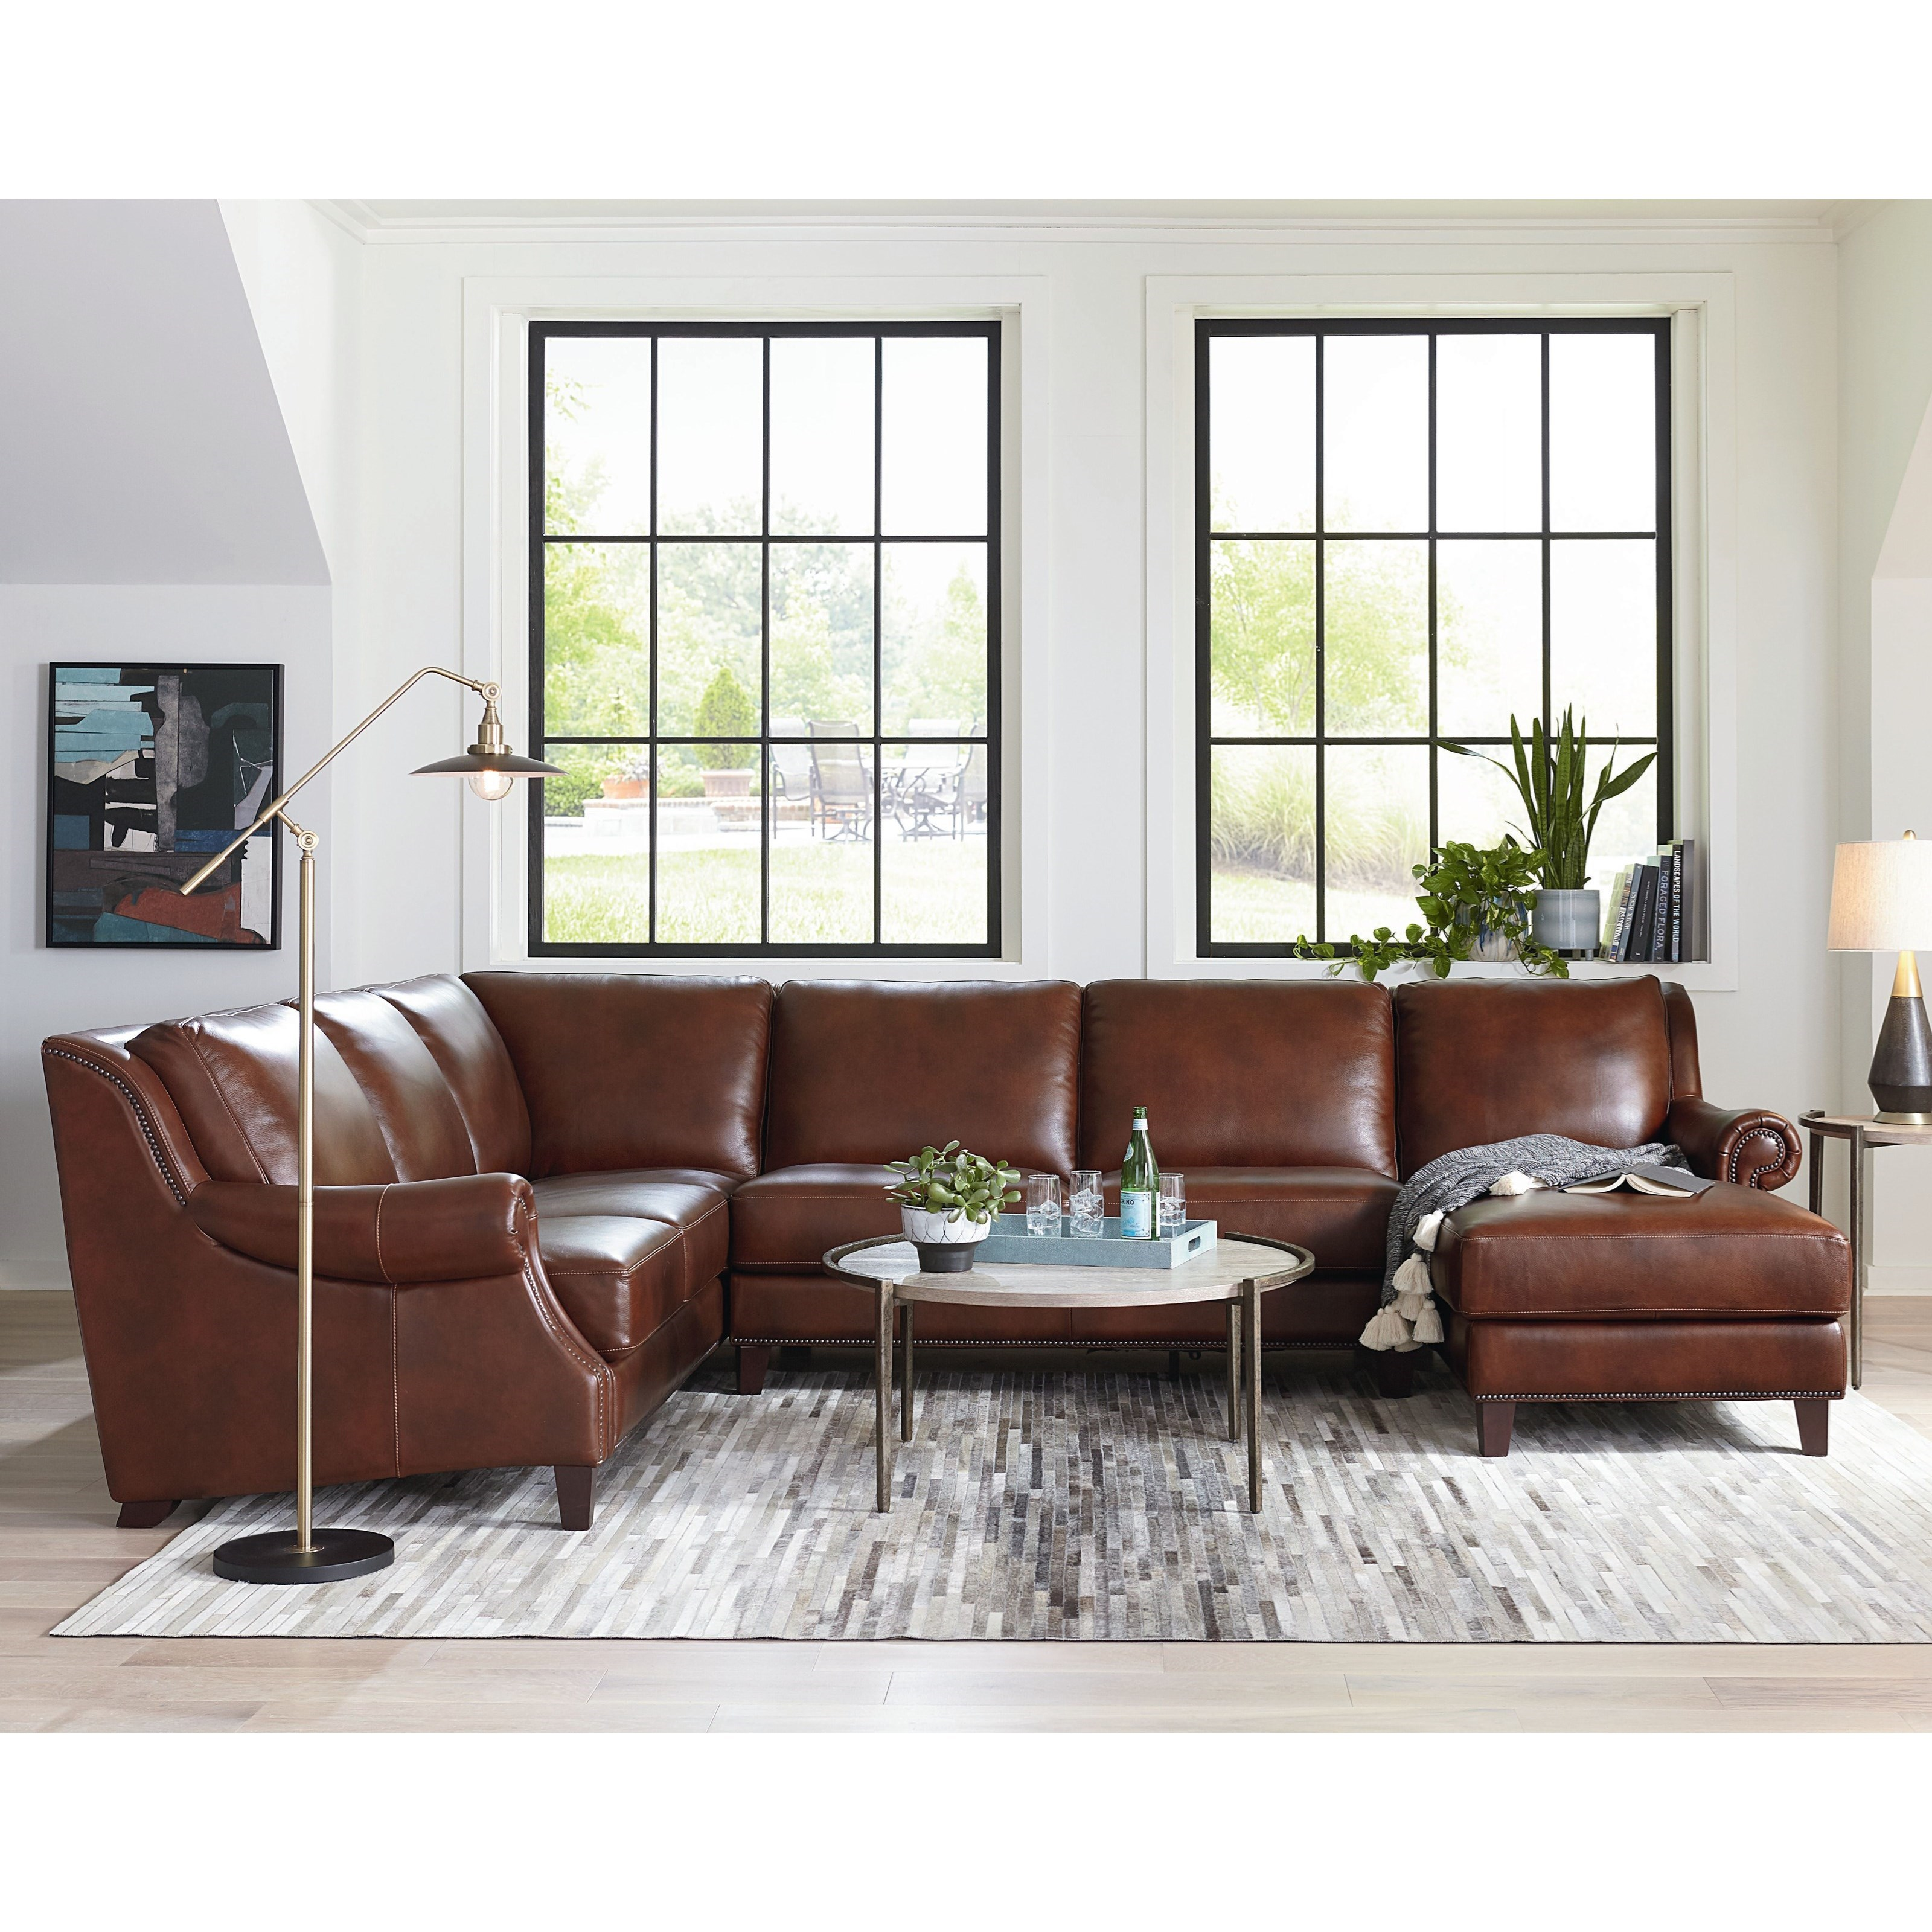 Pierce Sectional with Right-Facing Chaise by Bassett at Bassett of Cool Springs